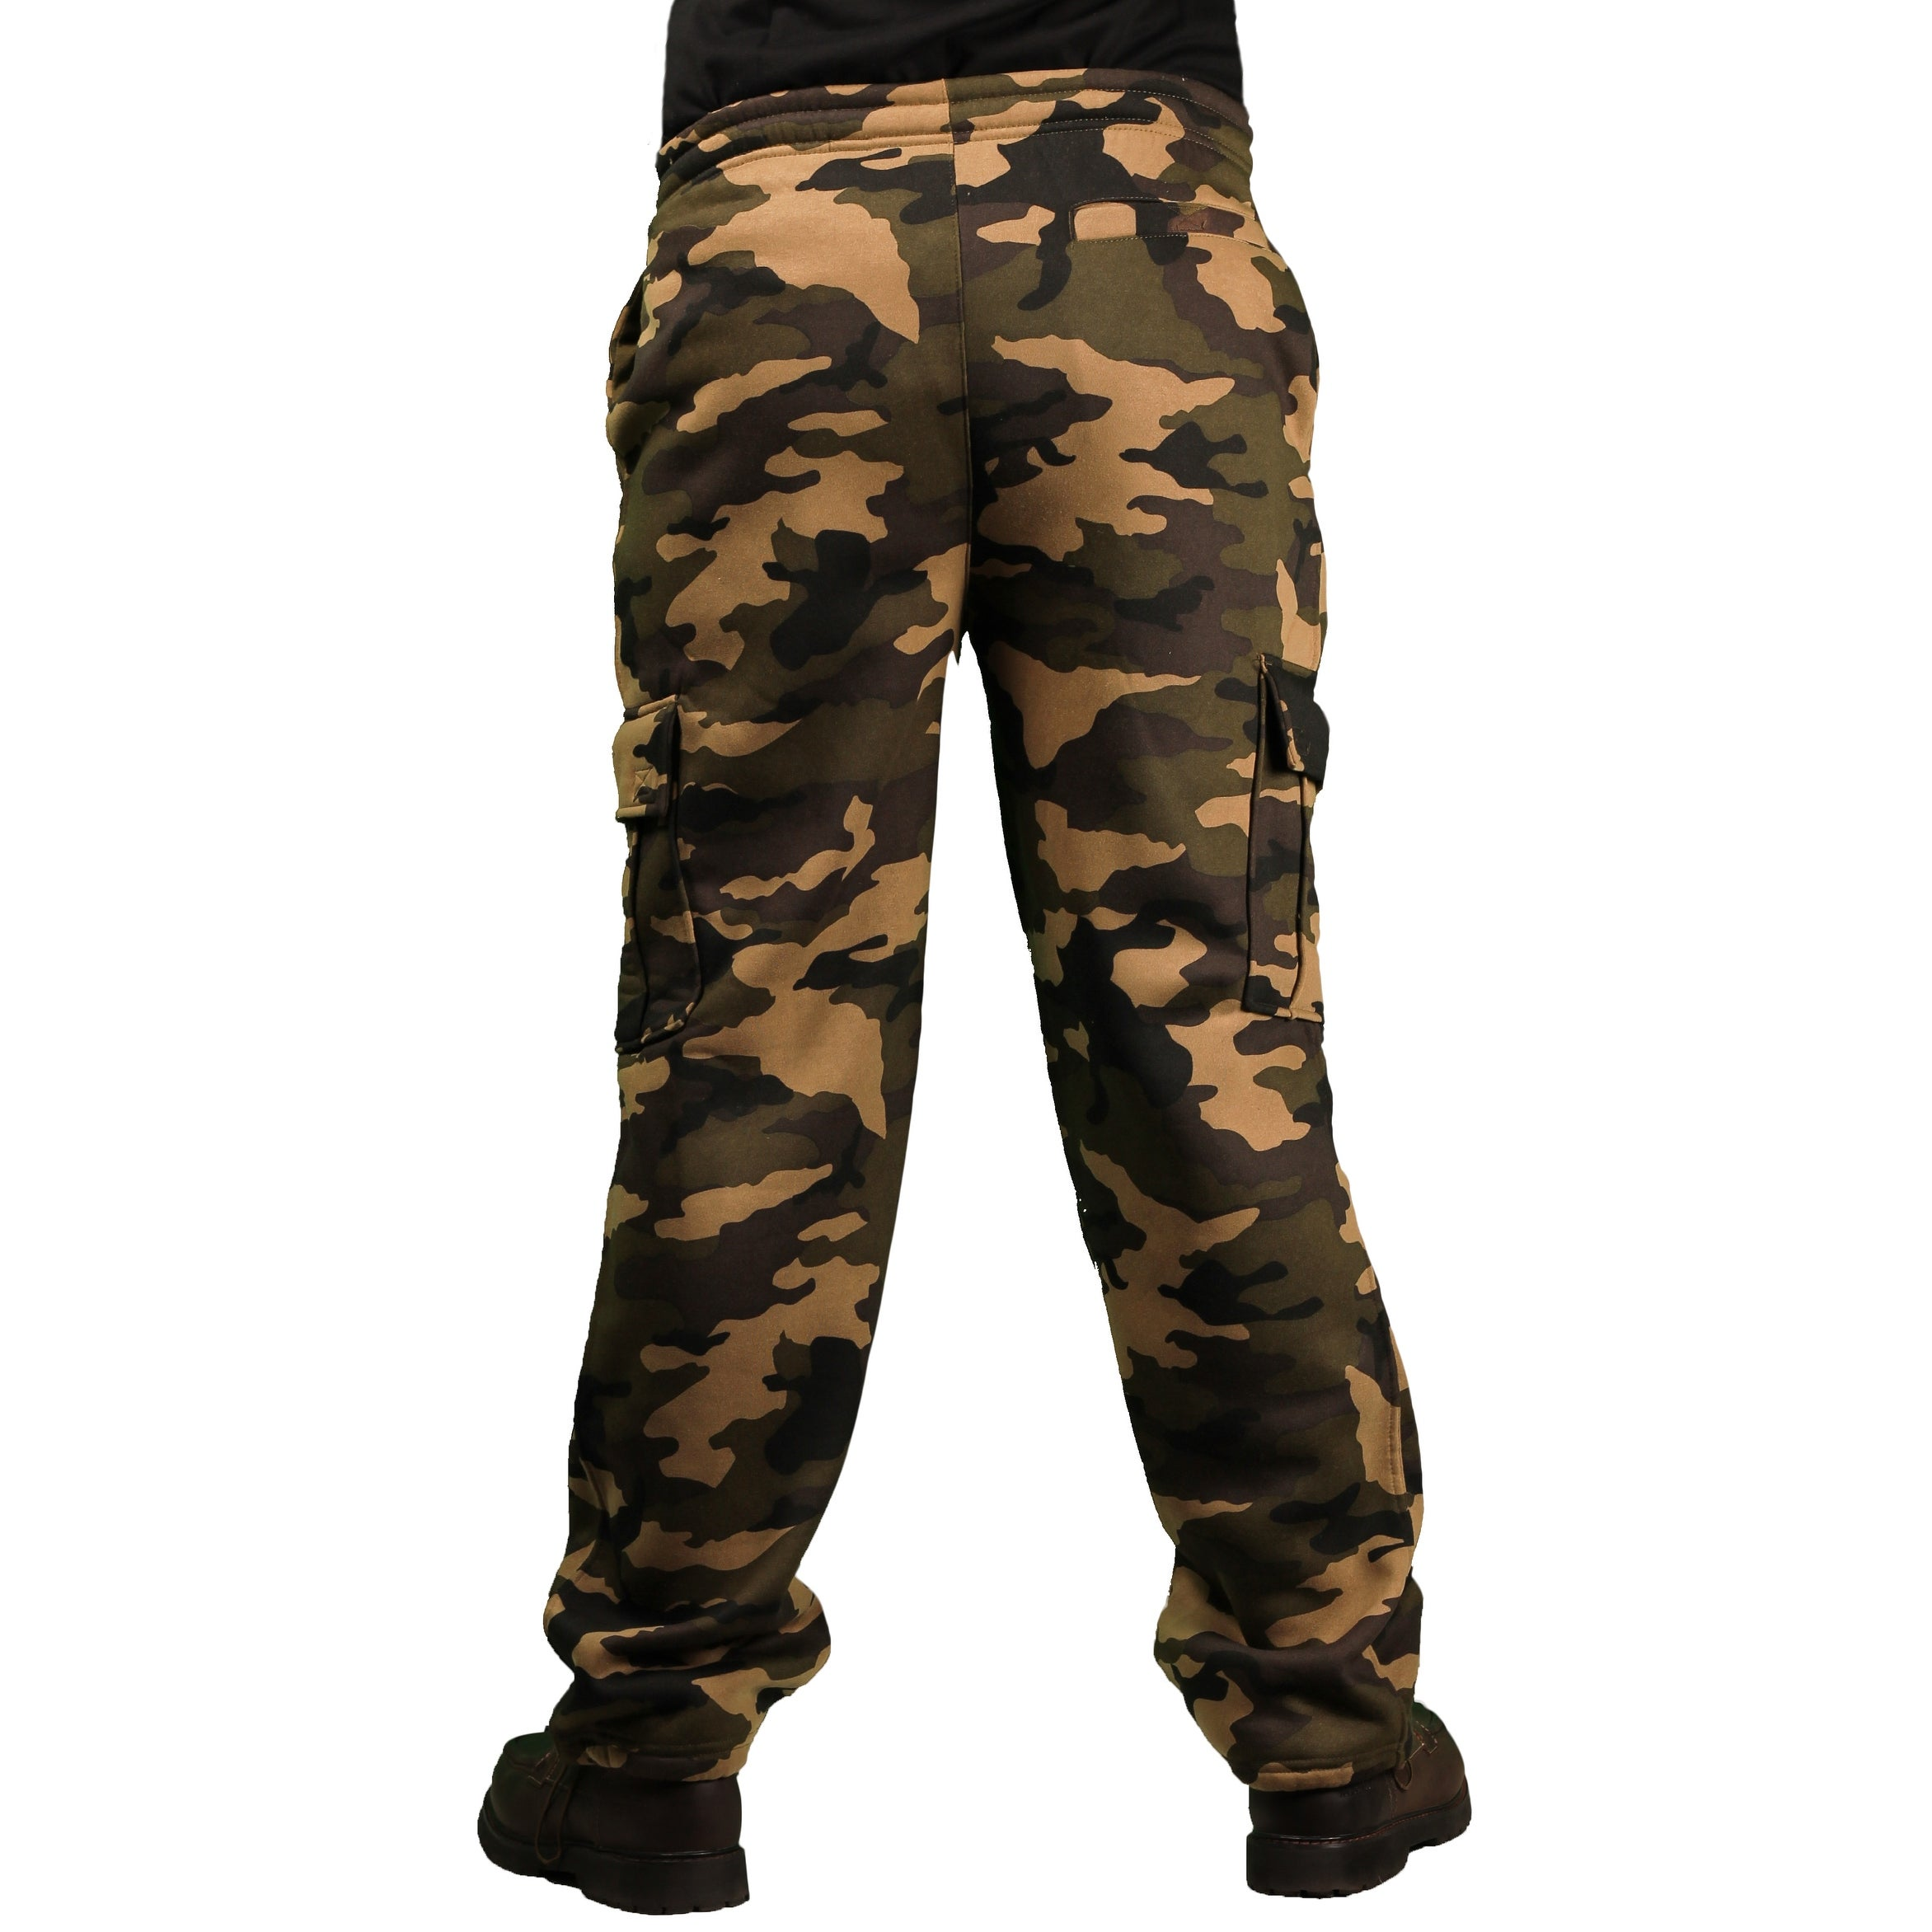 670021d022 Shop PJ Mark Men's Heavy Fleece Camouflage Cargo Pant - Free Shipping On  Orders Over $45 - Overstock - 14780934